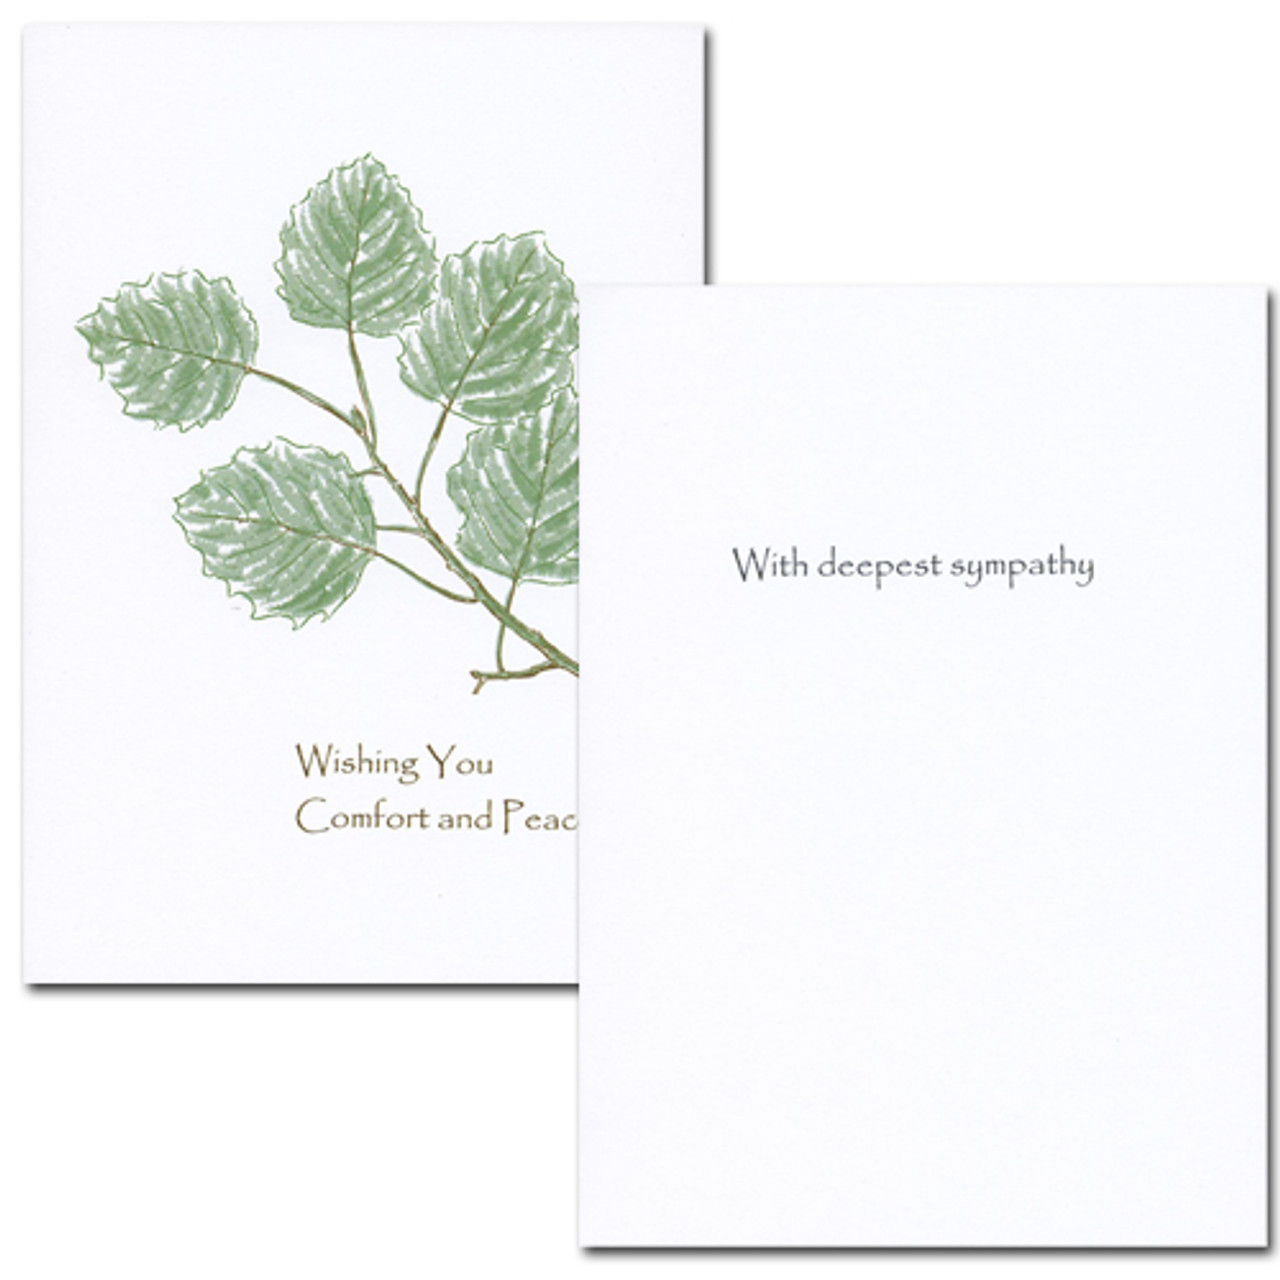 "Sympathy Card - Comfort cover is an botanical illustration of green leaves on a branch with the words ""Wishing you comfort and peace"" Sympathy Card - Comfort inside has the words ""With deepest sympathy"" and space to write a sympathy message from a medical professional, business associate or personal relationship"